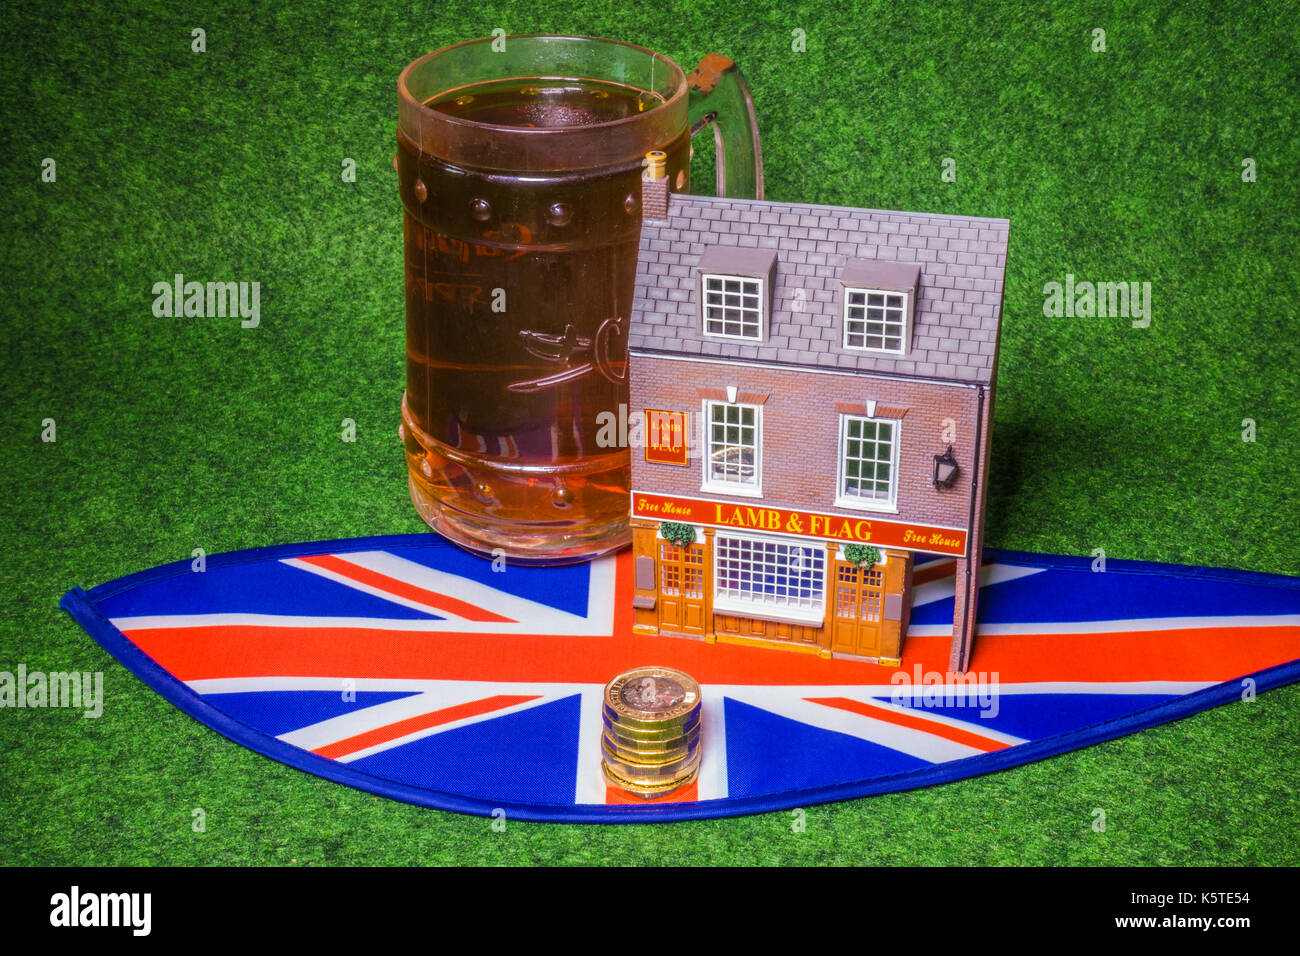 Model British pub with drink and a Union Jack with new pound coins. UK drinks industry concept, with costs from business and customer perspectives. - Stock Image